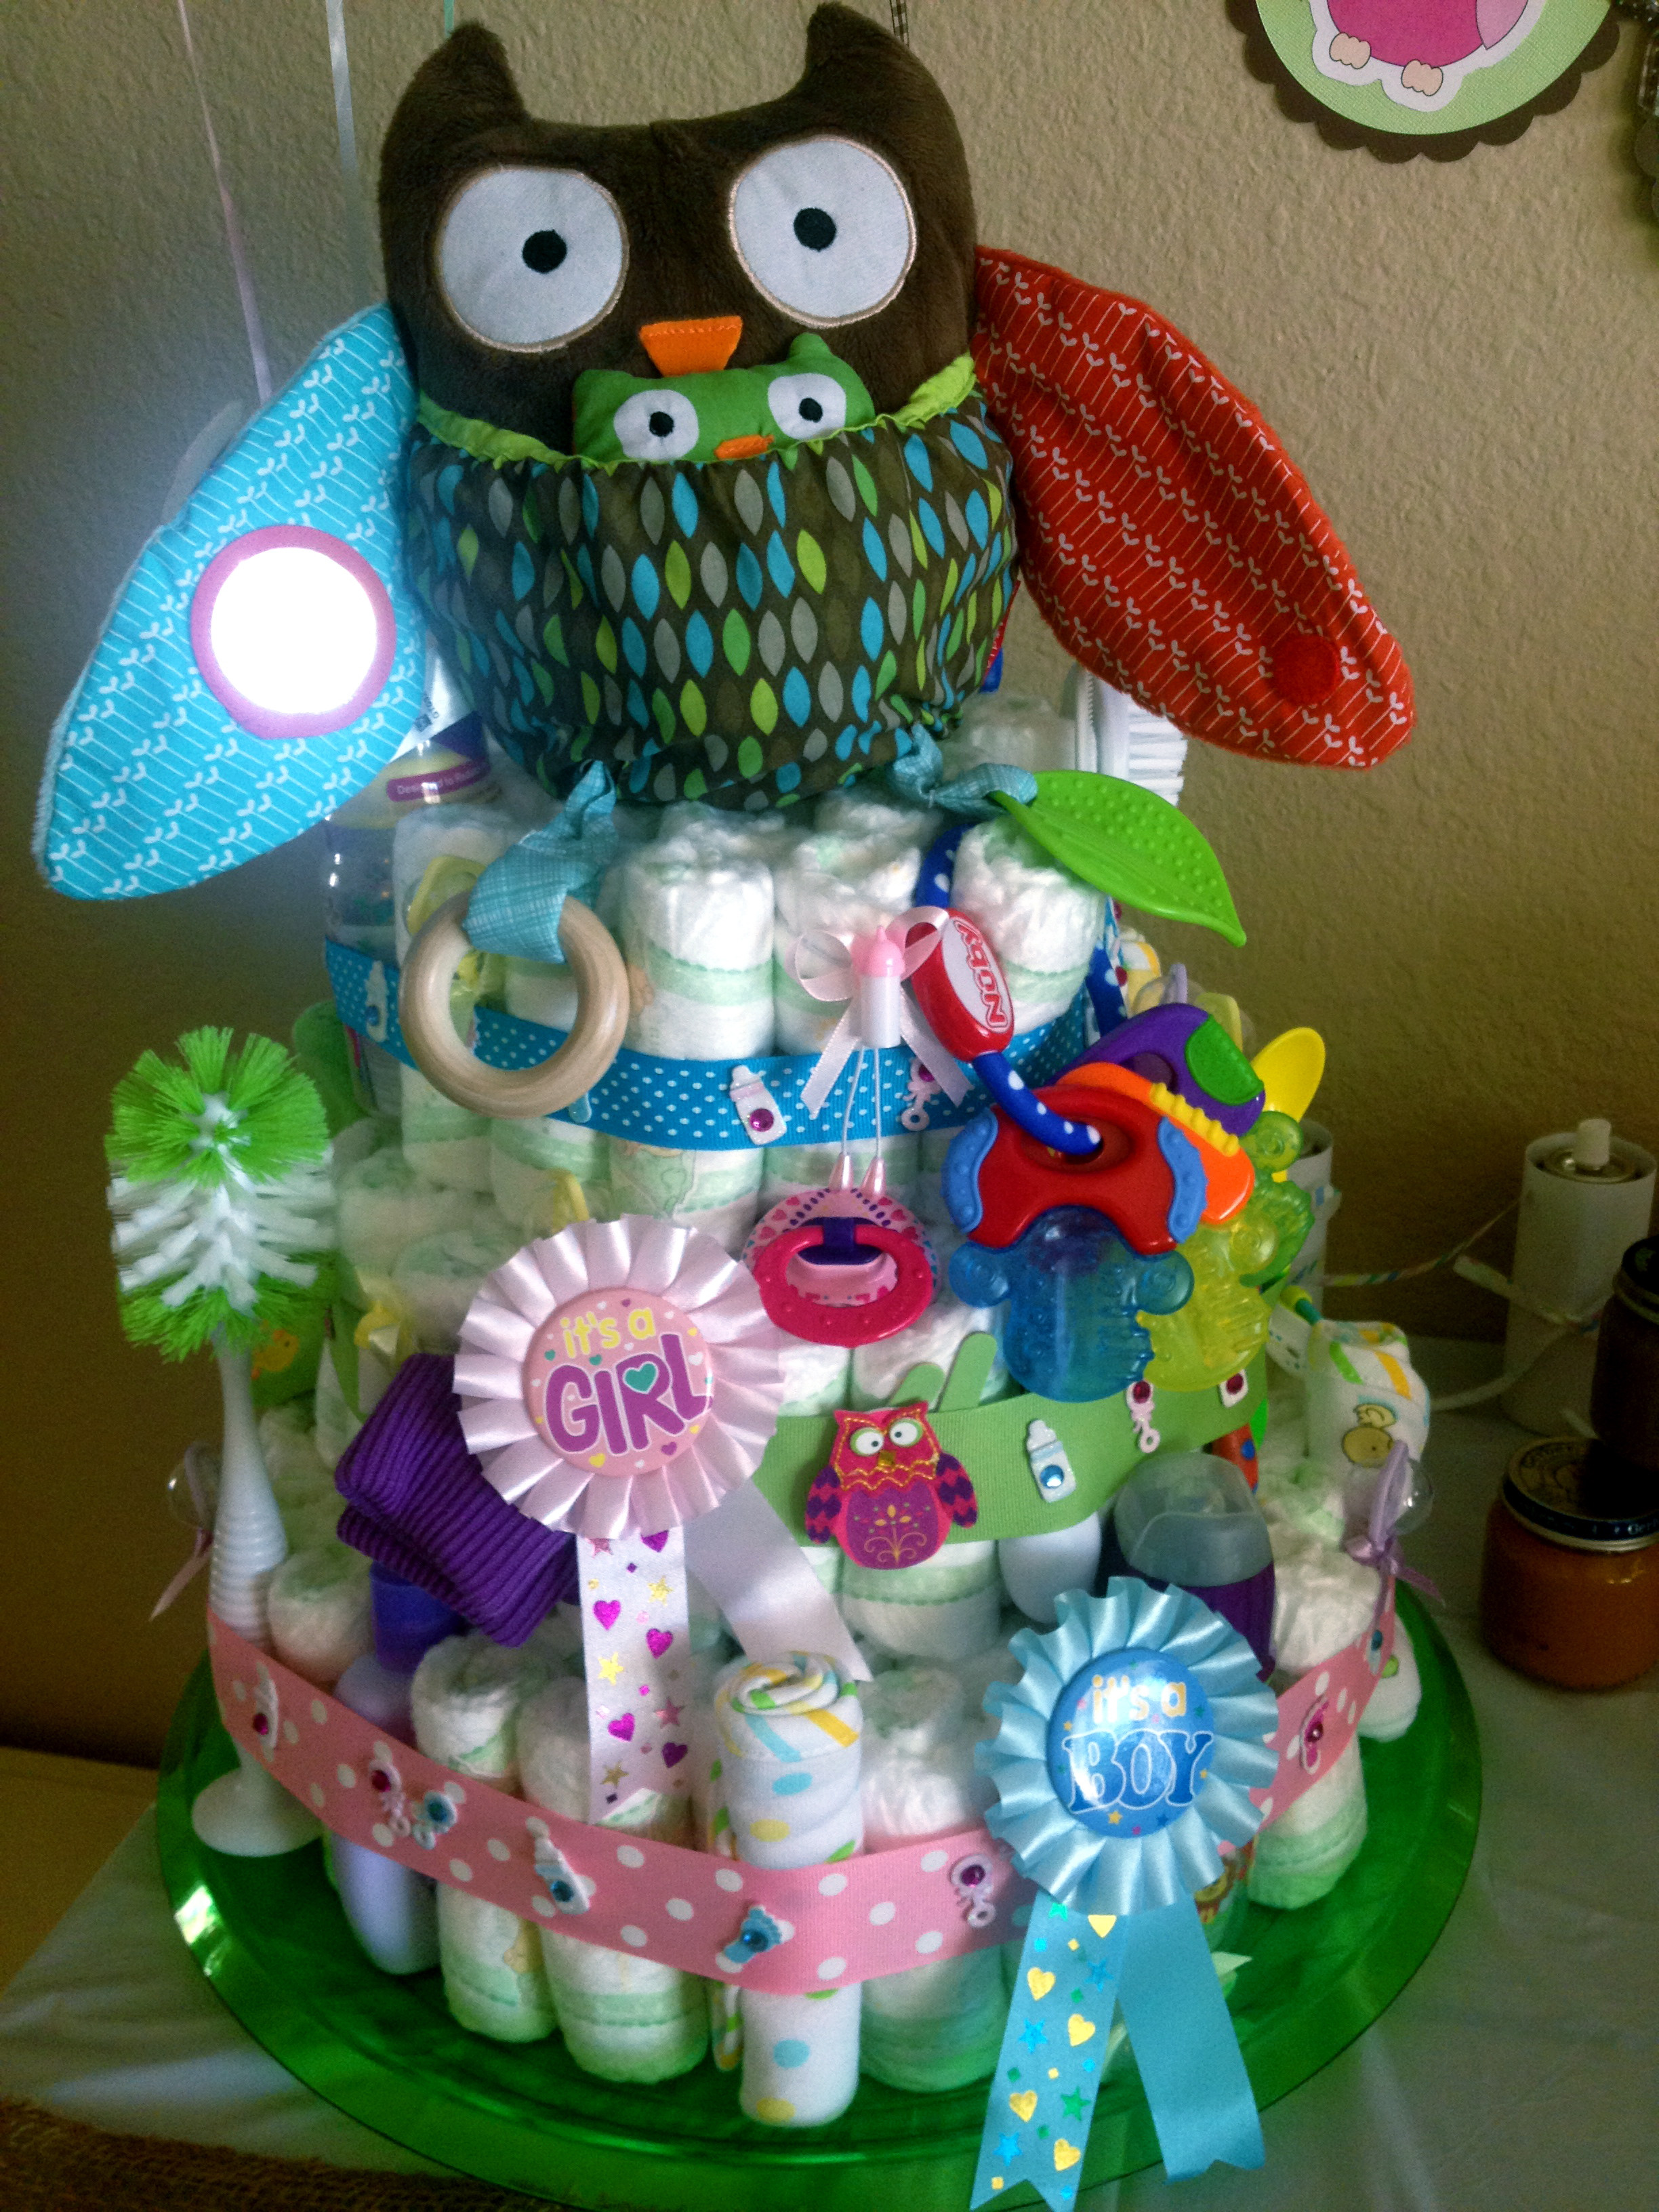 Gift Ideas For Baby Reveal Party  Gender Reveal Baby Shower